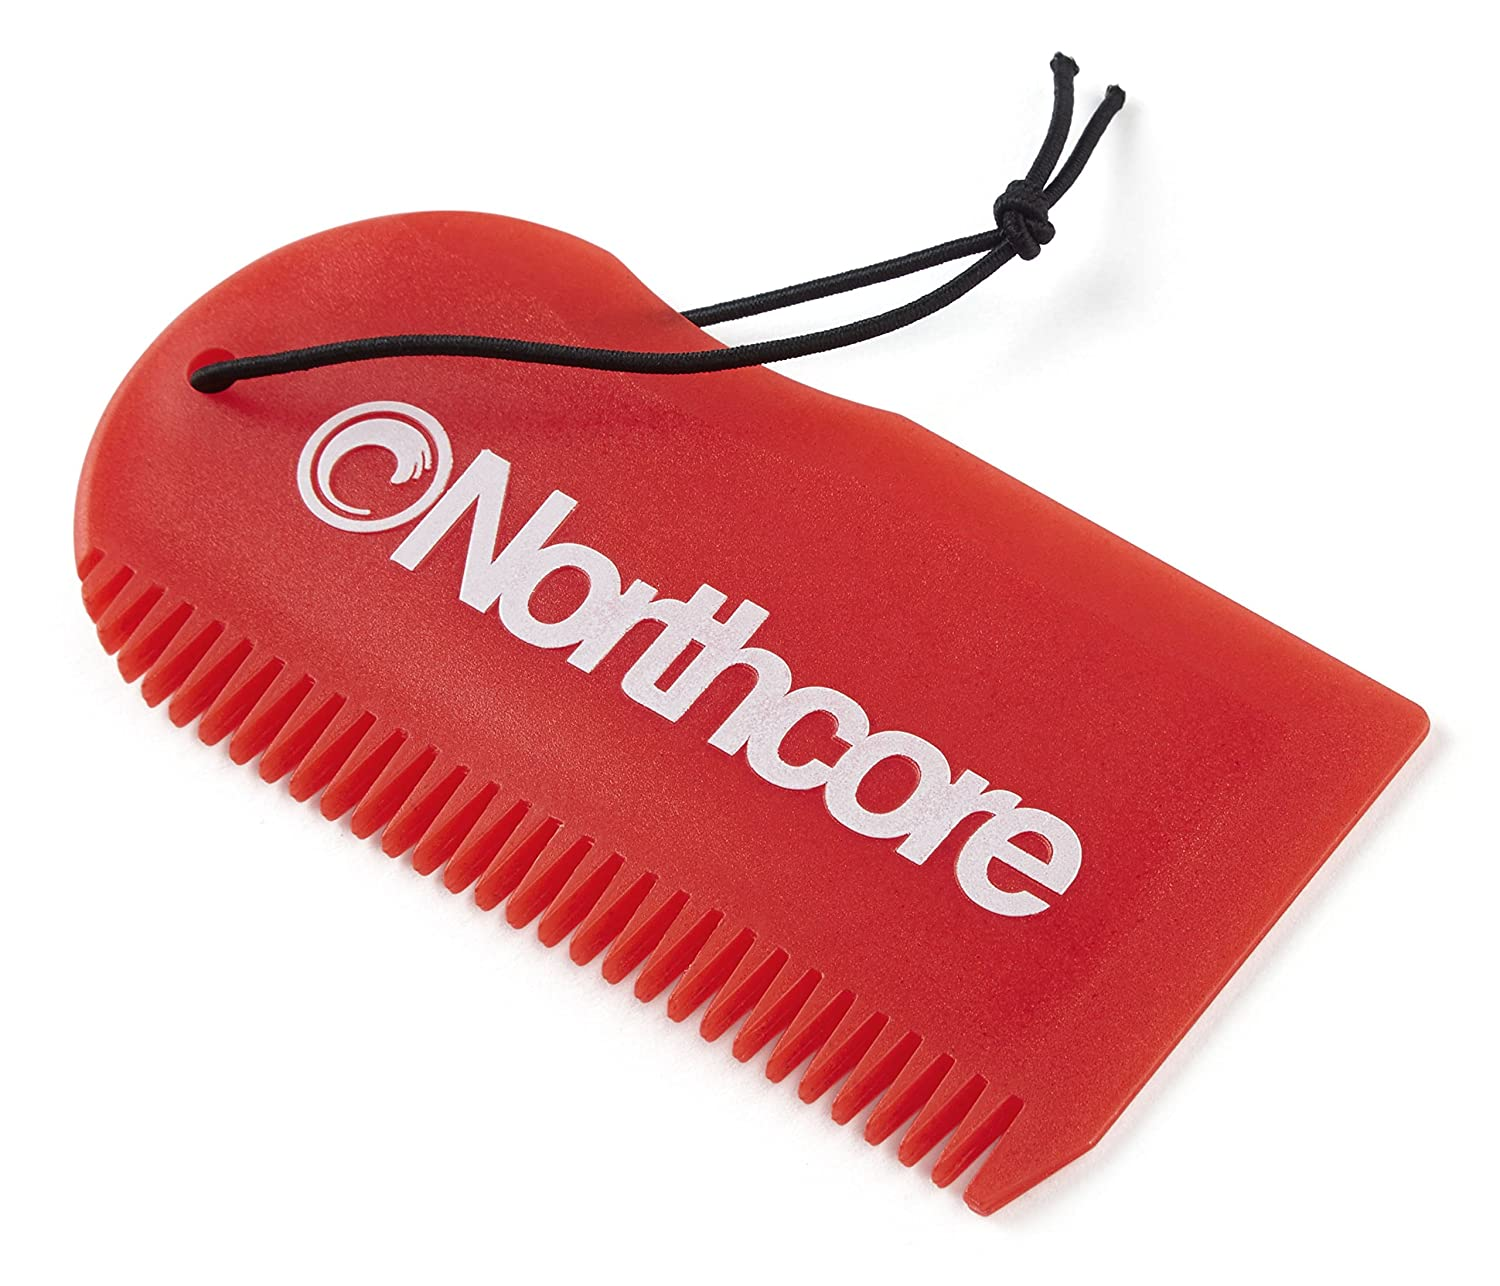 2018 Northcore Wax Comb RED NOCO17B